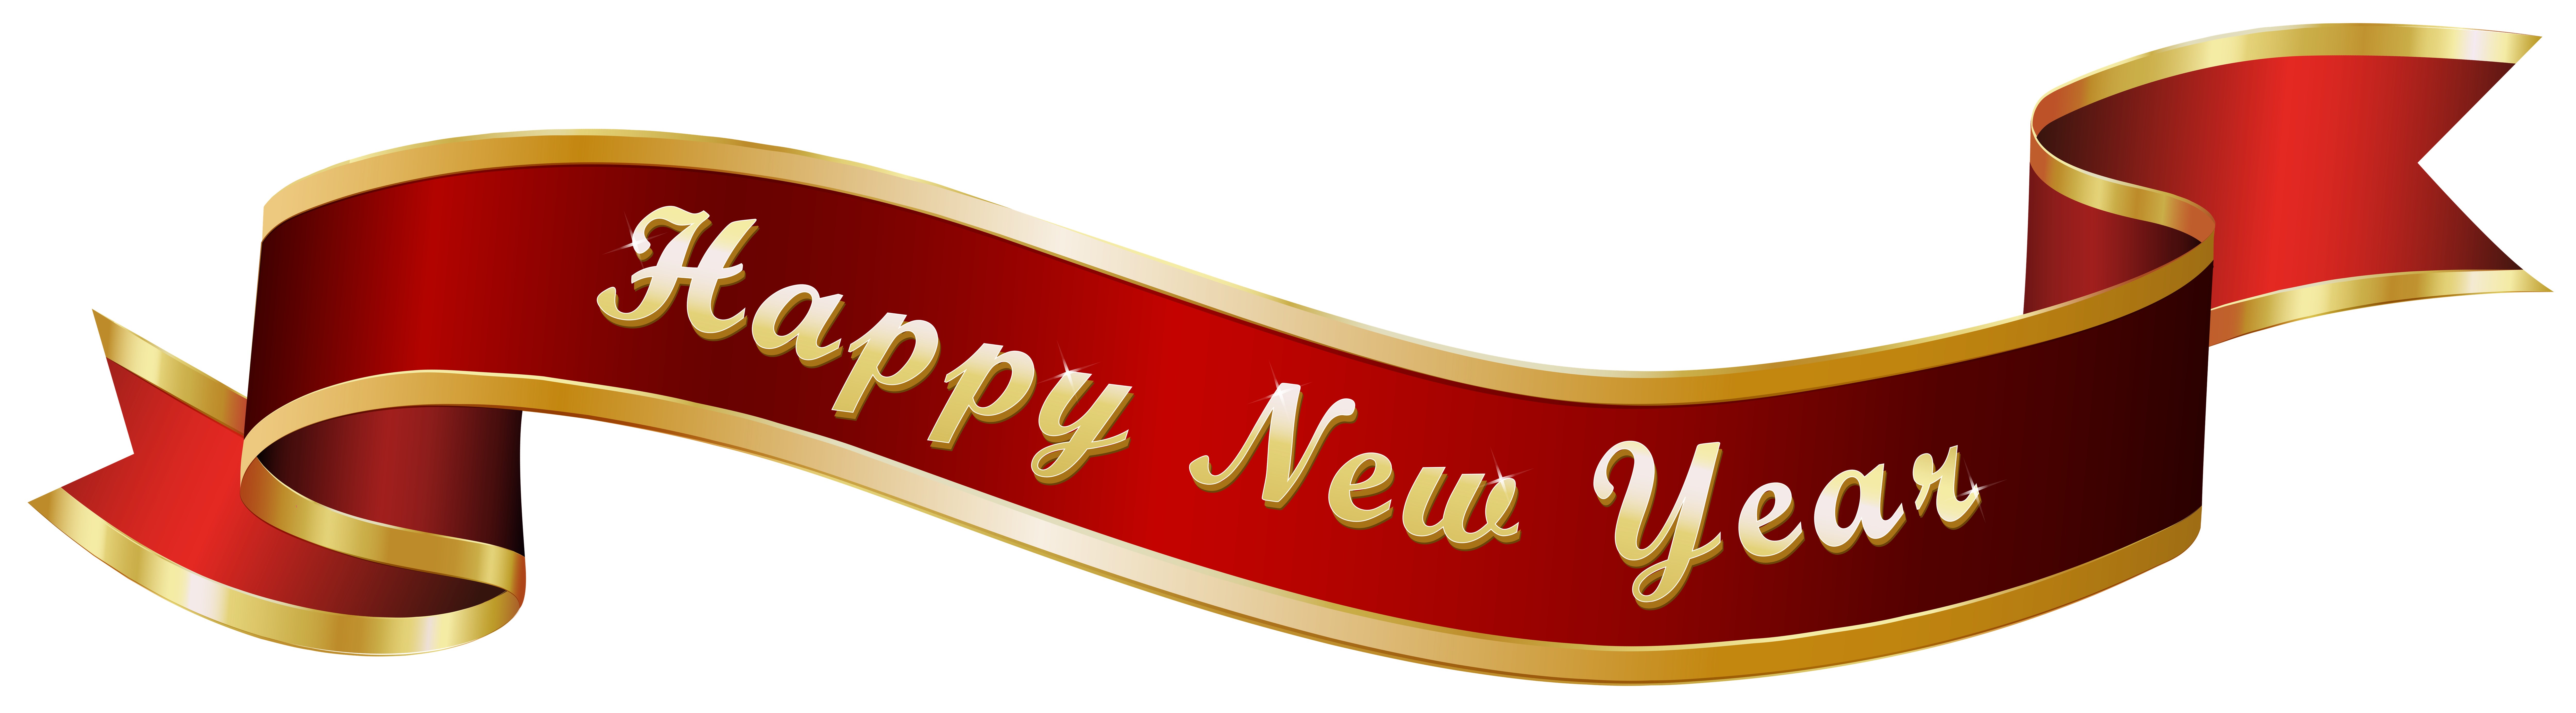 graphic freeuse Png tier brianhenry co. Clipart happy new year 2017